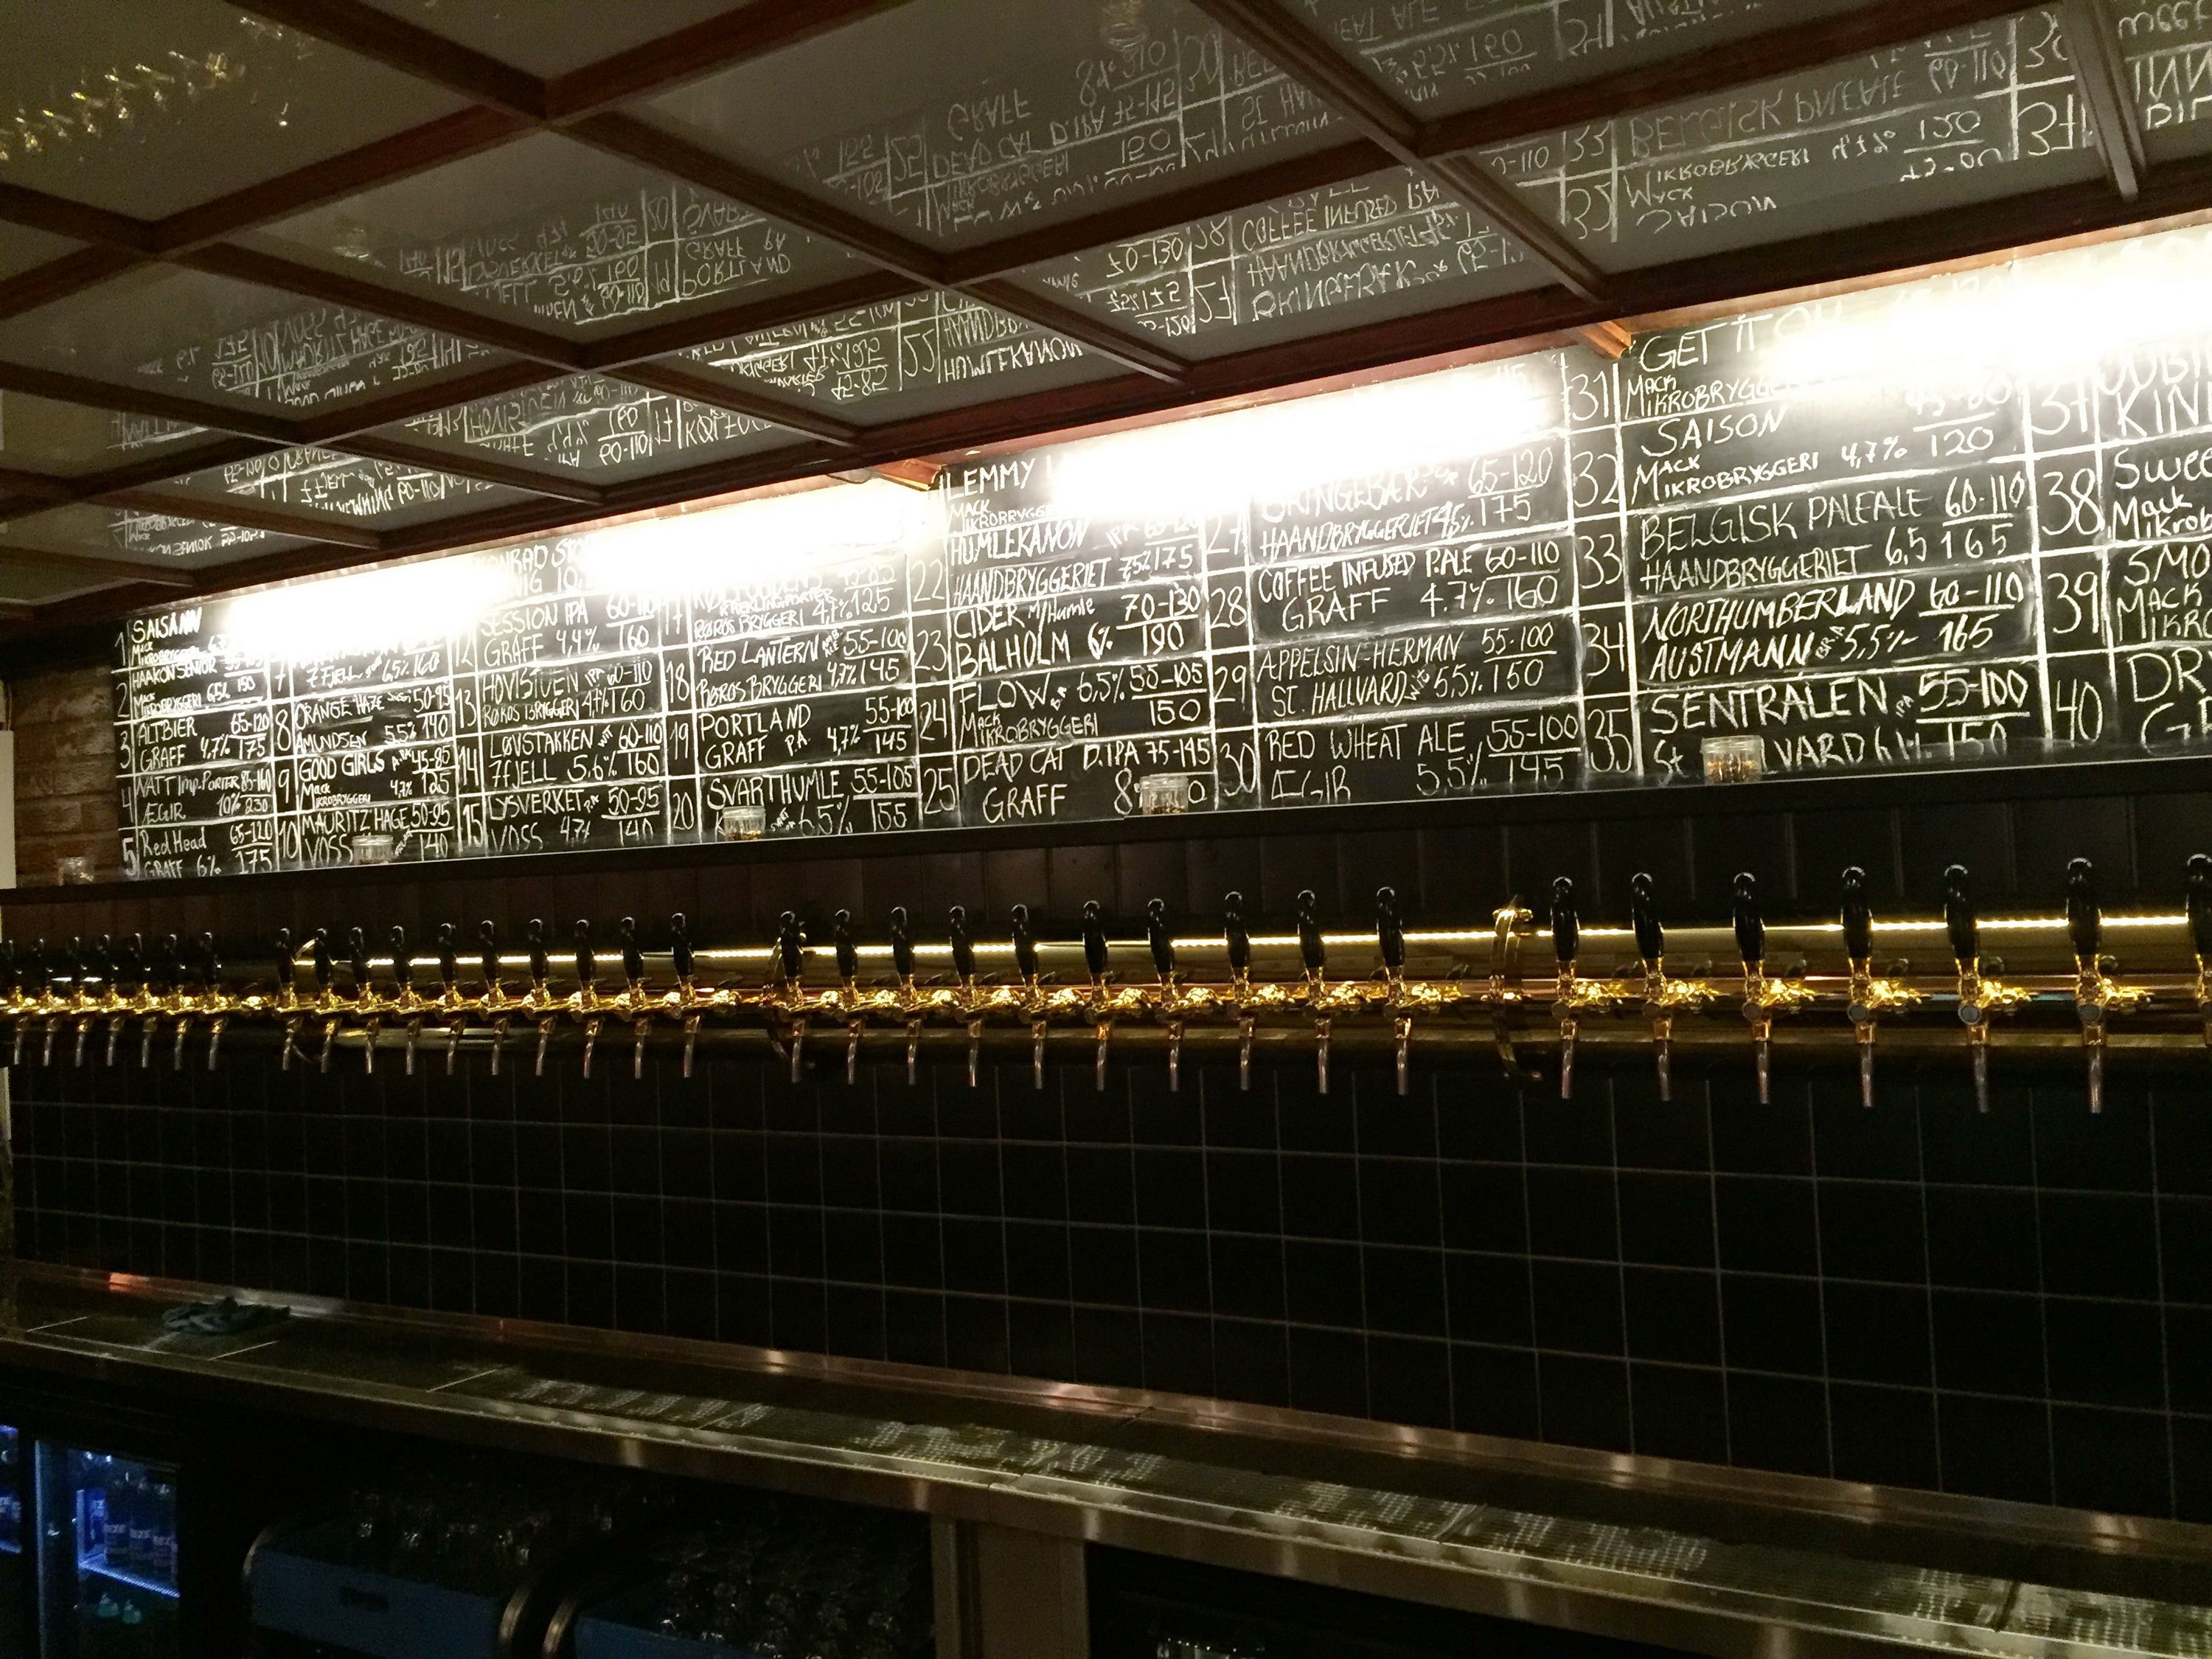 Line of dozens of taps with chalkboard menu above it